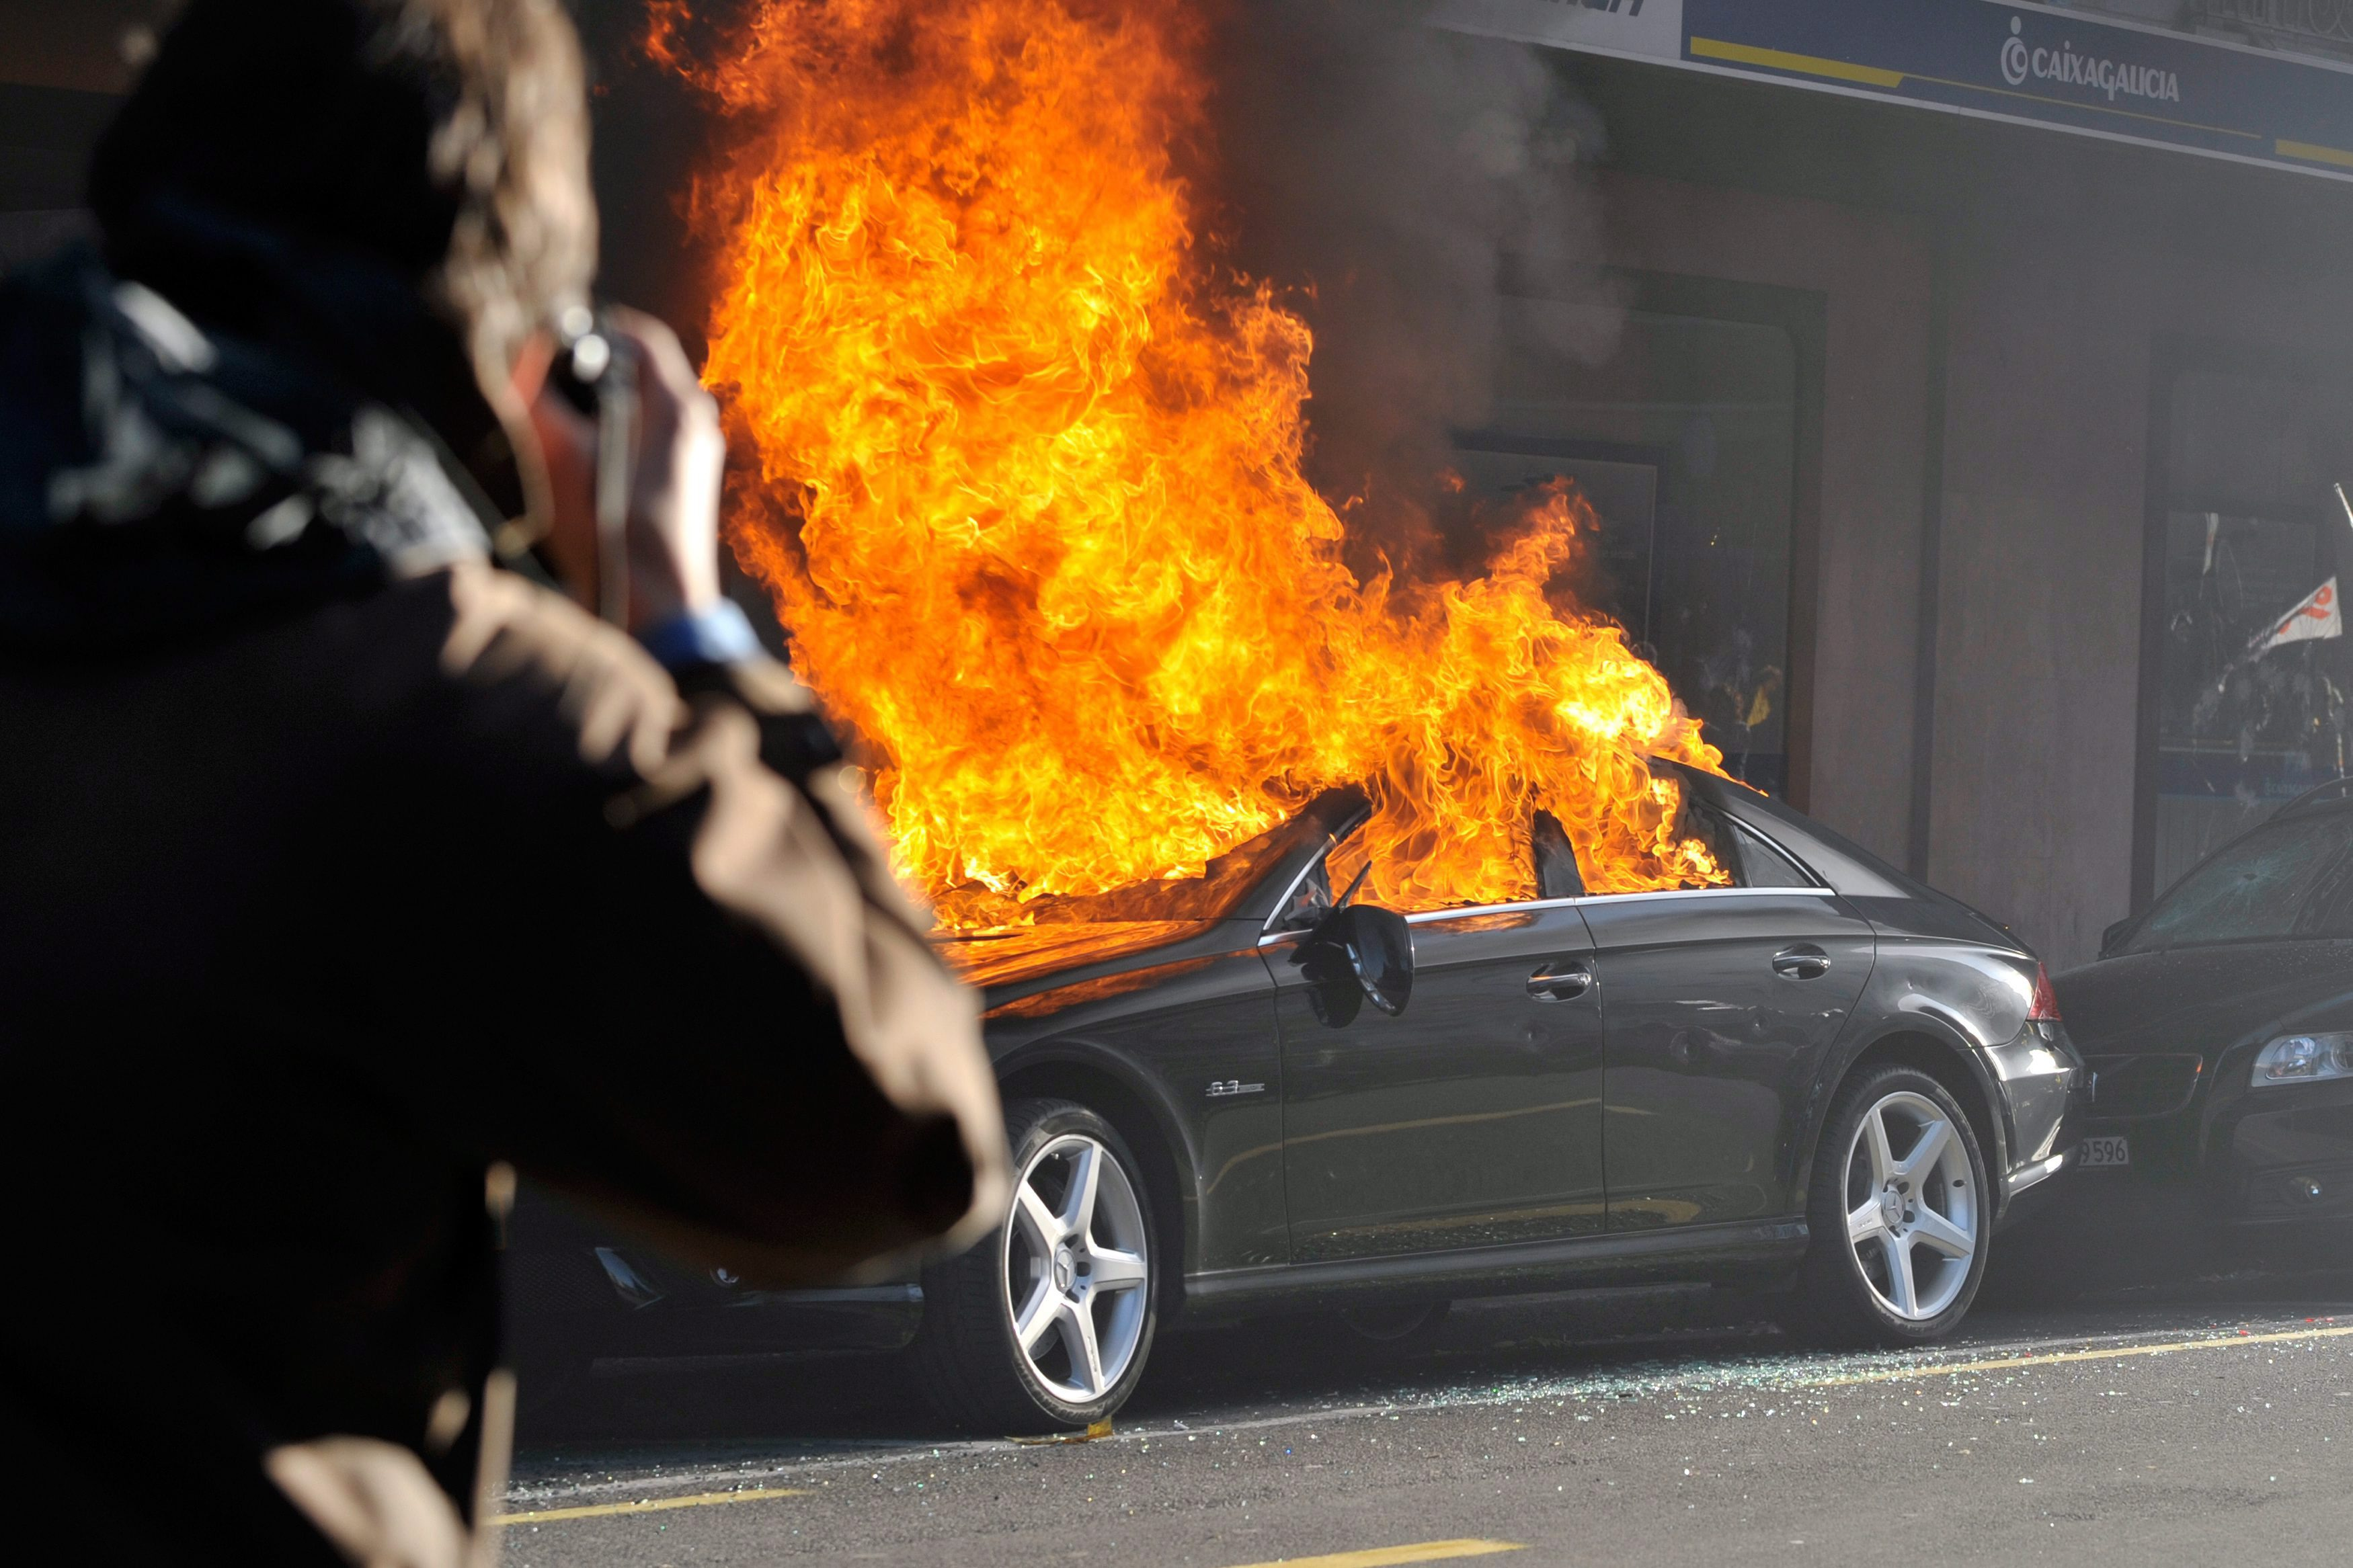 Cars have been set on fire by demonstrators during a protest against the seventh WTO Ministerial Conference